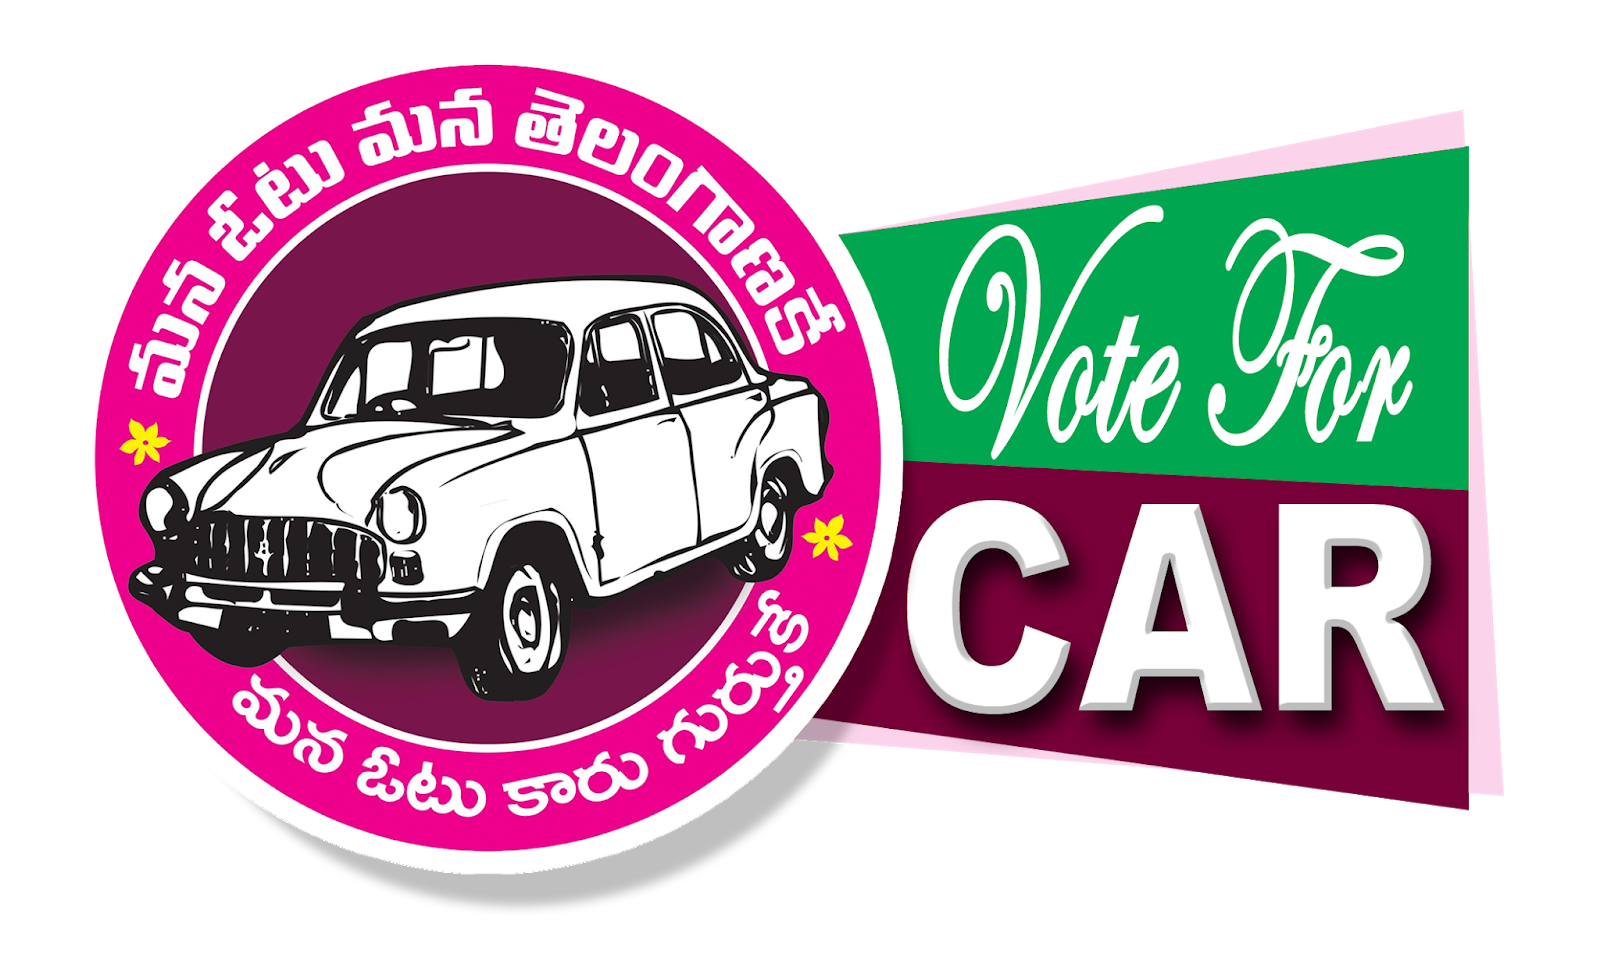 vote for car HD design png logo free downloads.